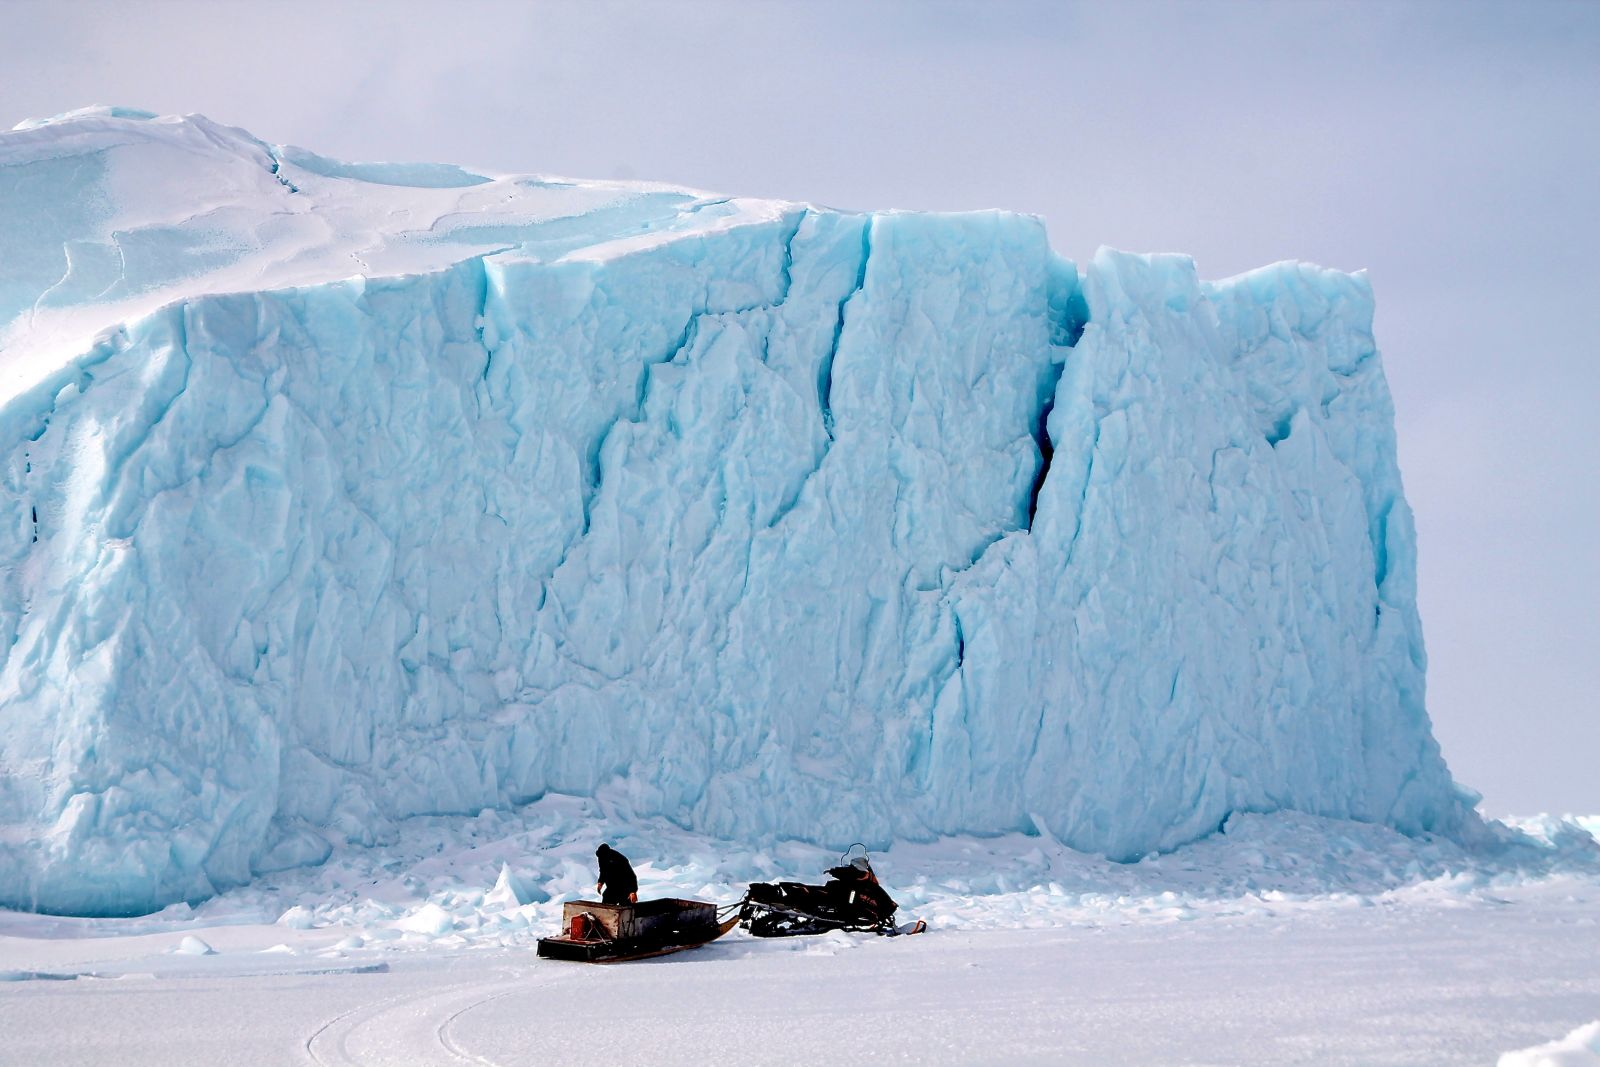 collecting iceberg ice for drinking water